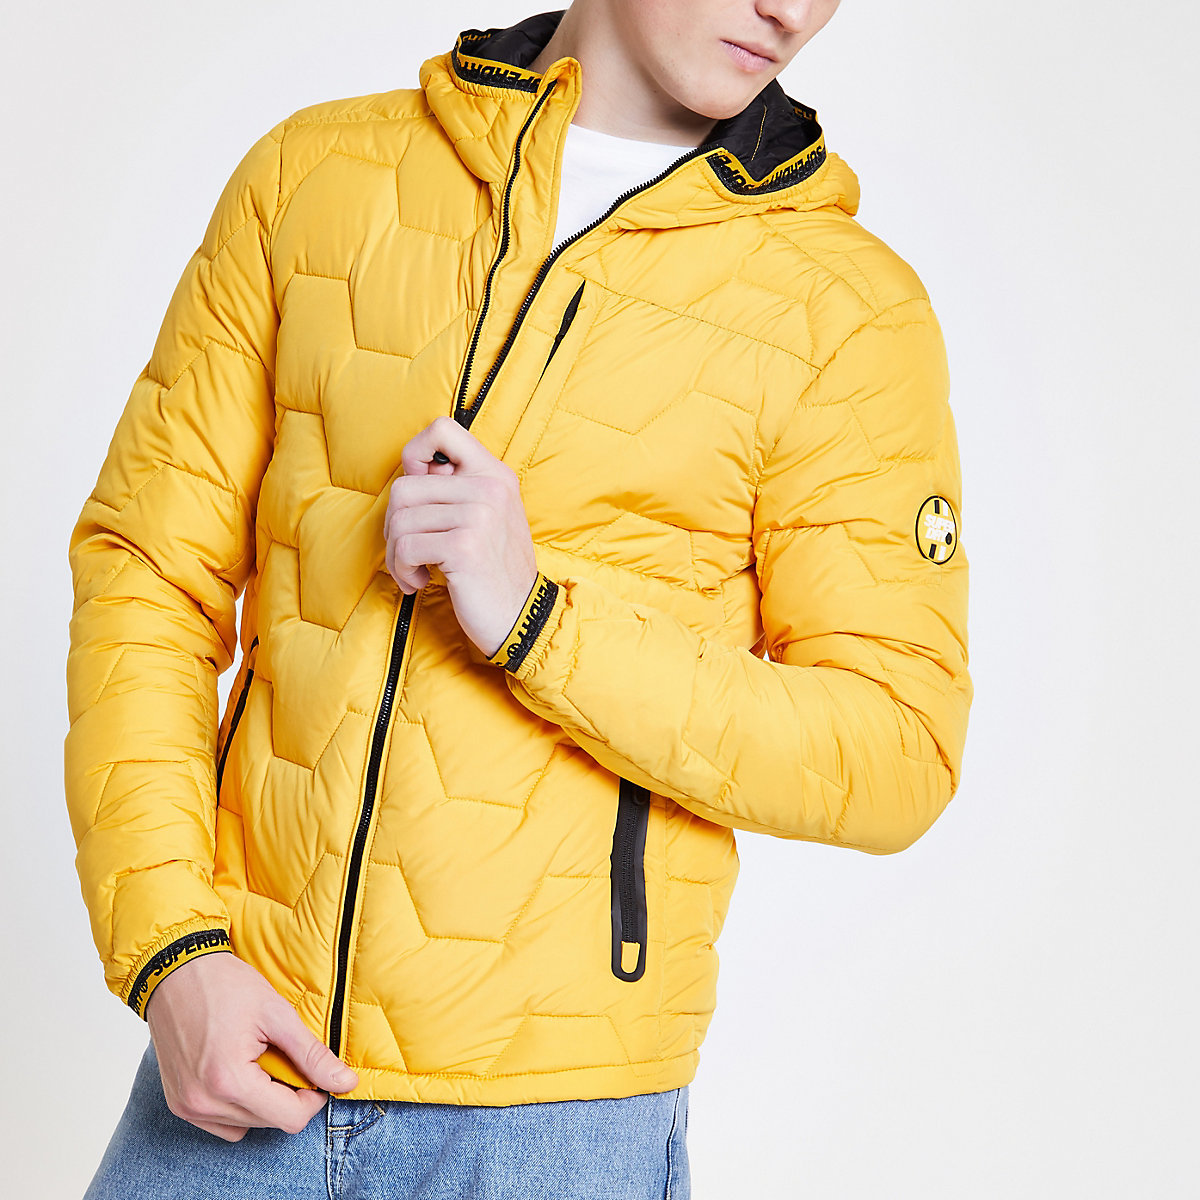 Superdry yellow quilted puffer jacket